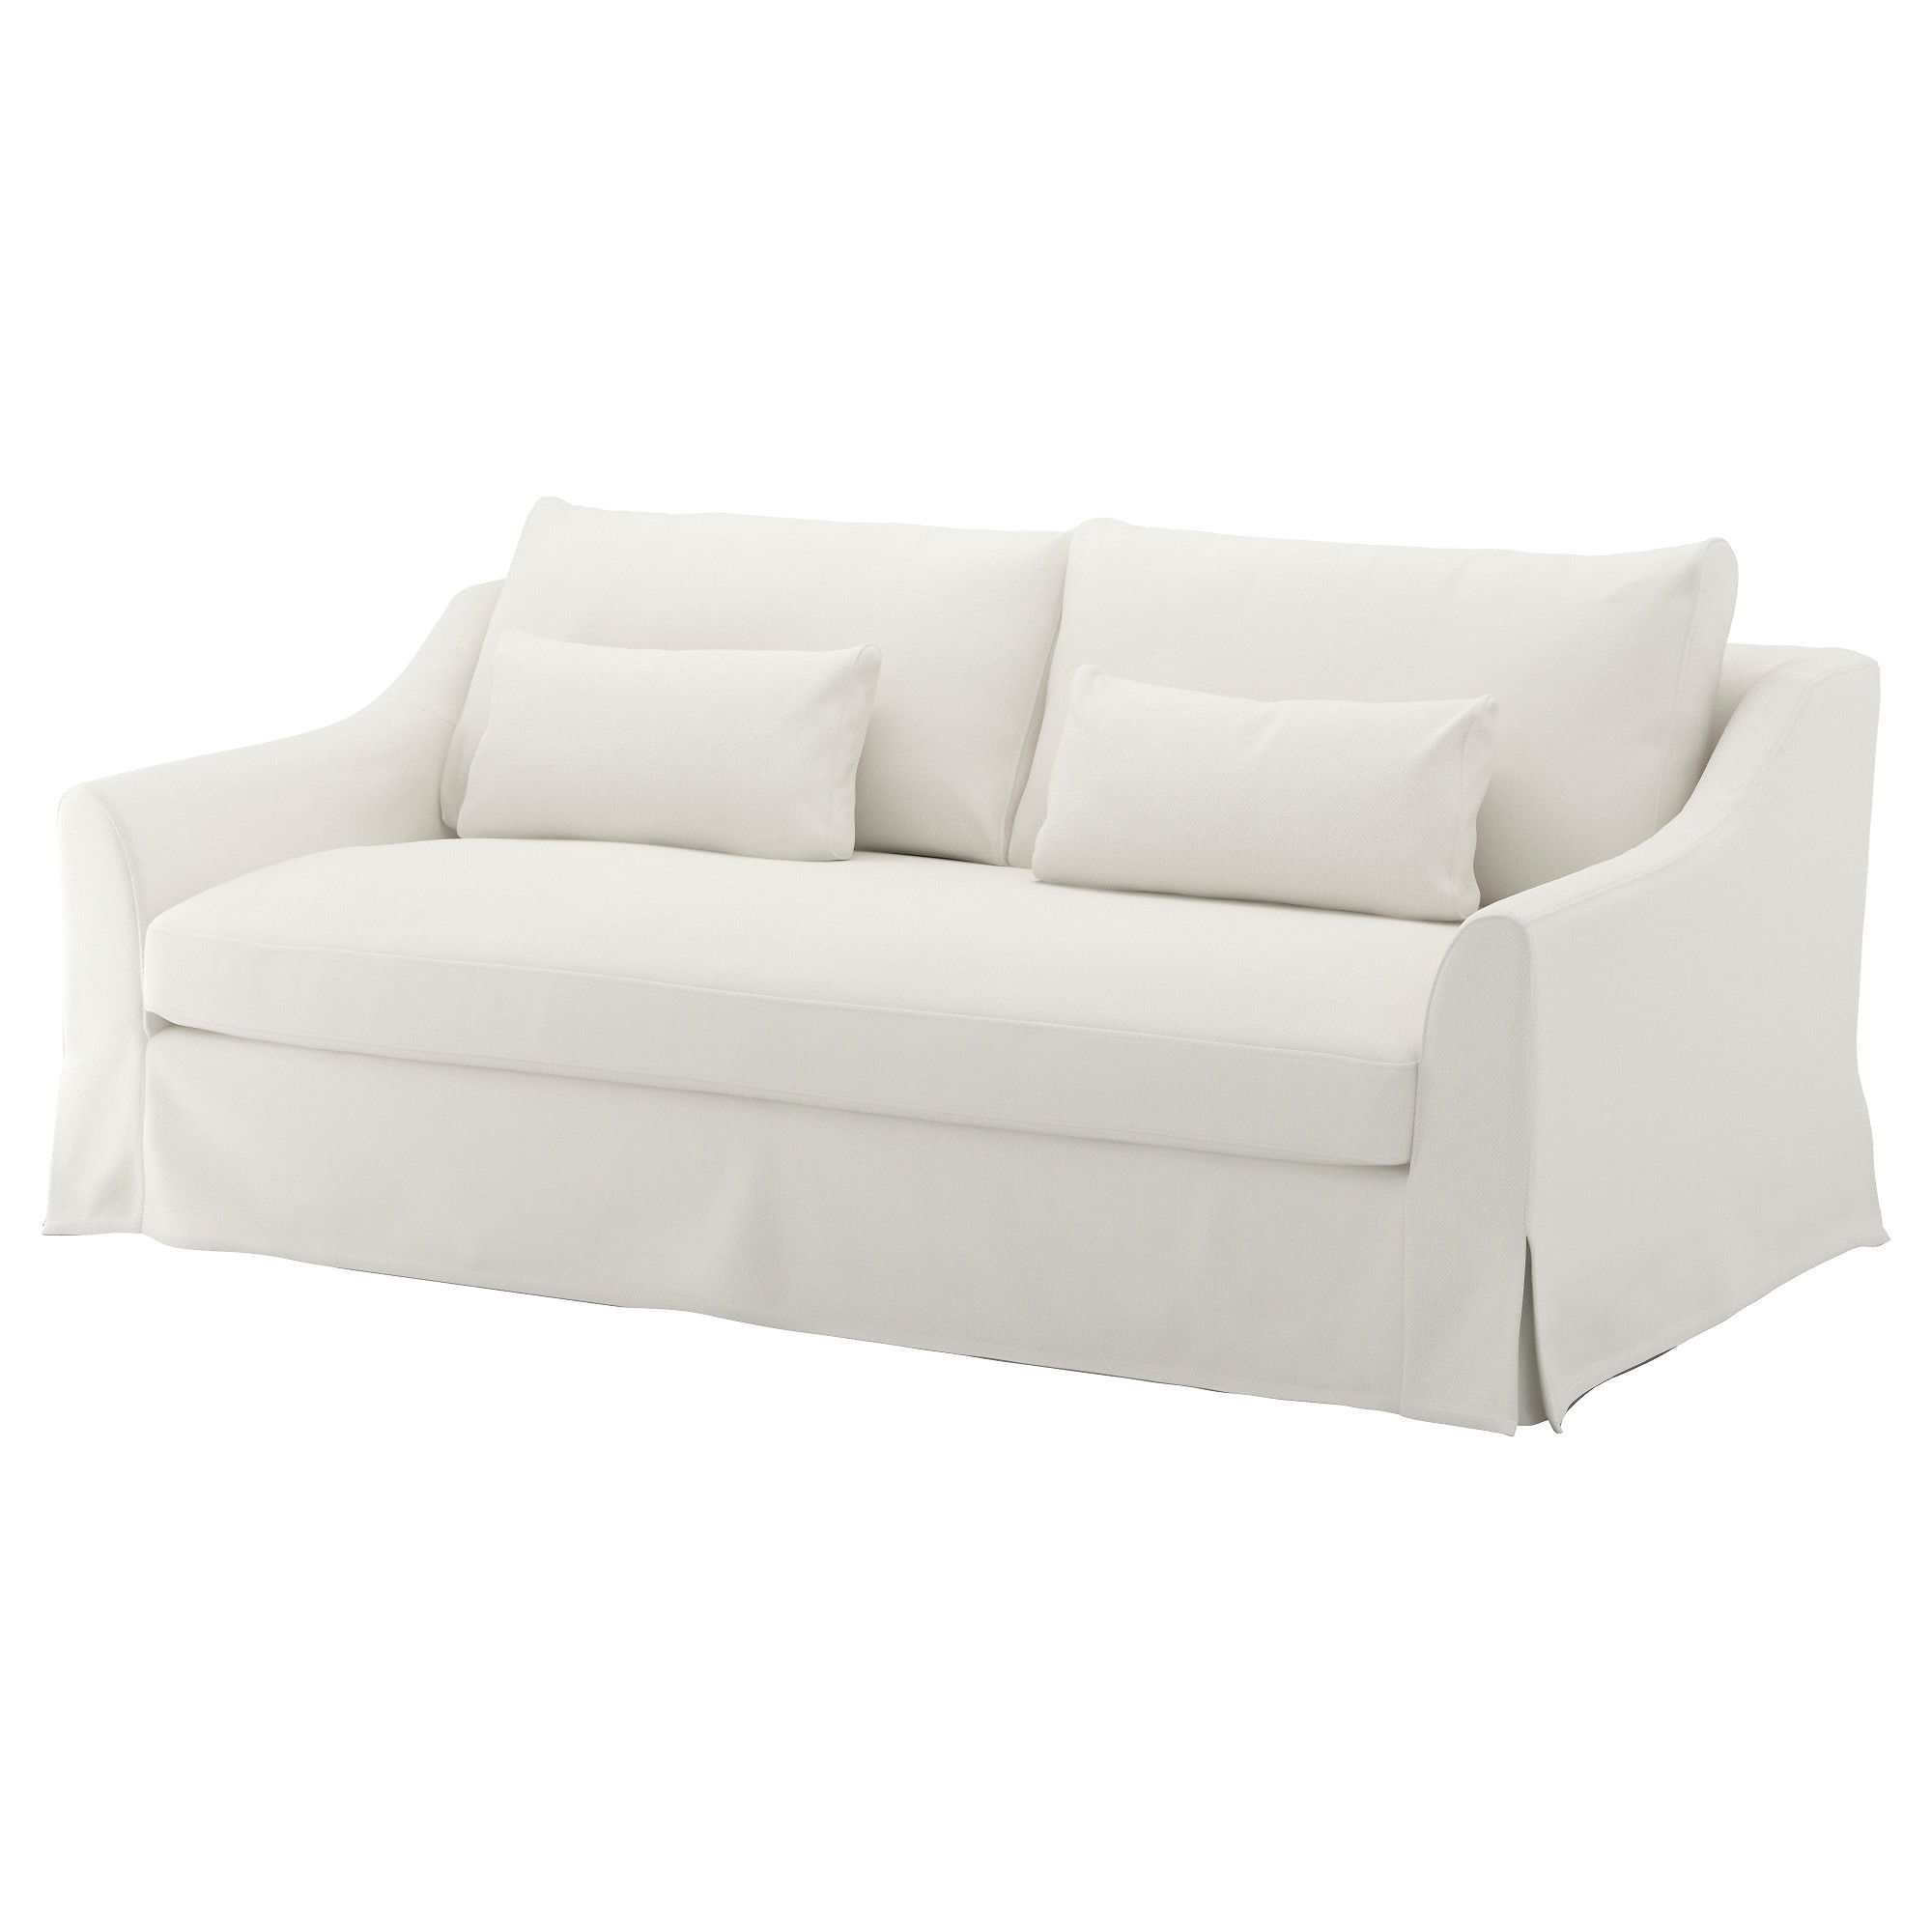 fabric sofas  modern  contemporary  ikea - fÄrlÖv sofa flodafors white height including back cushions    width